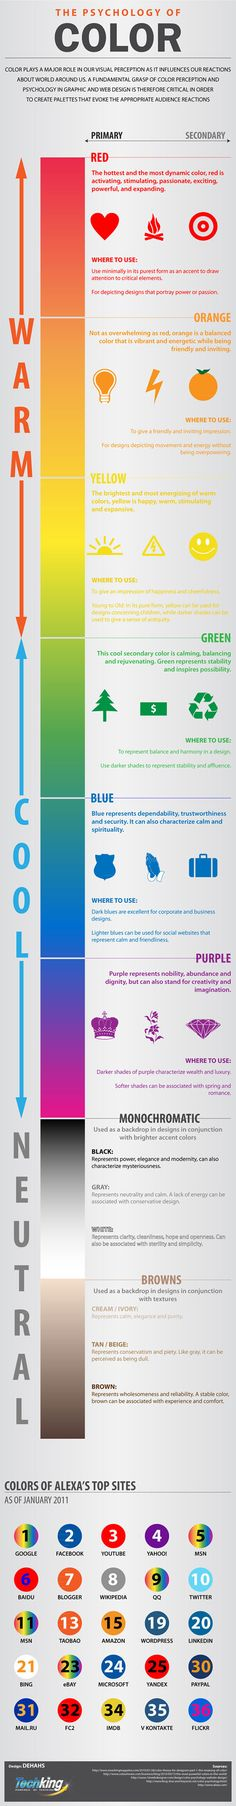 The Psychology of Colour.  #infographic #design